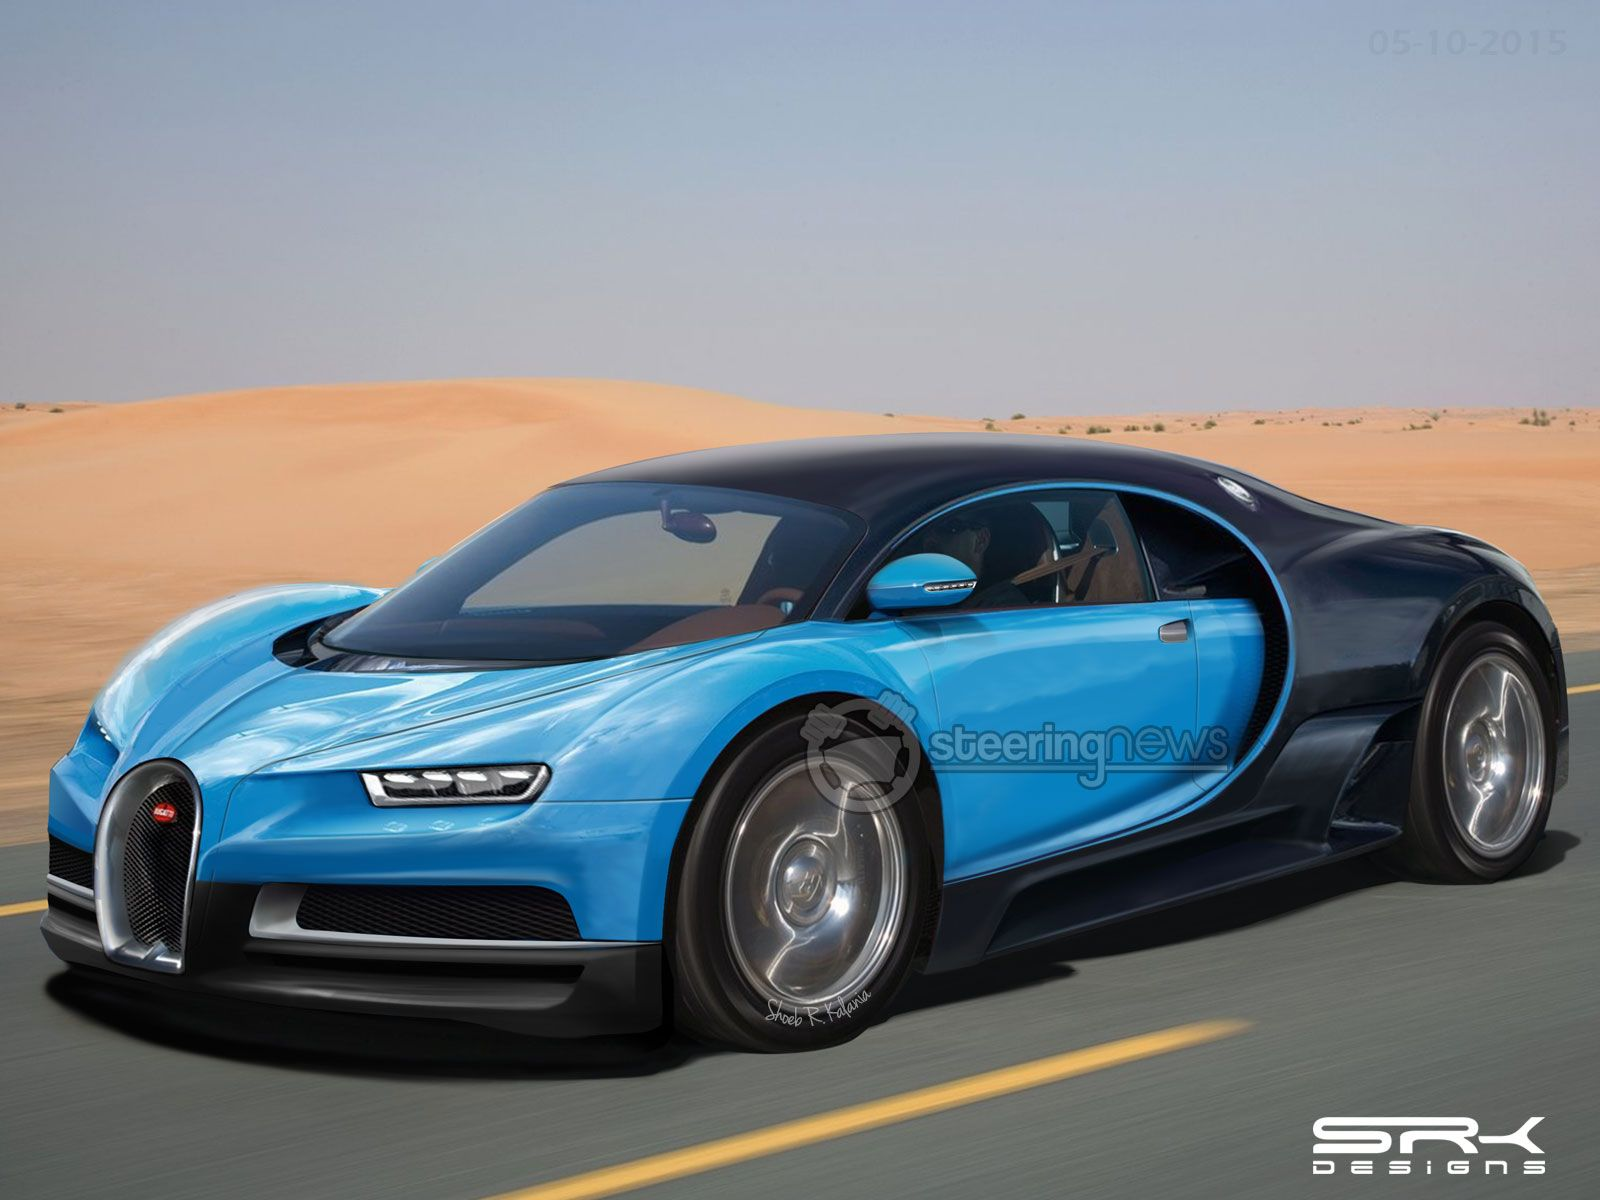 Delicieux The Bugatti Veyron Was First Mentioned At The 1999 Tokyo Motor Show And The  Caru2026